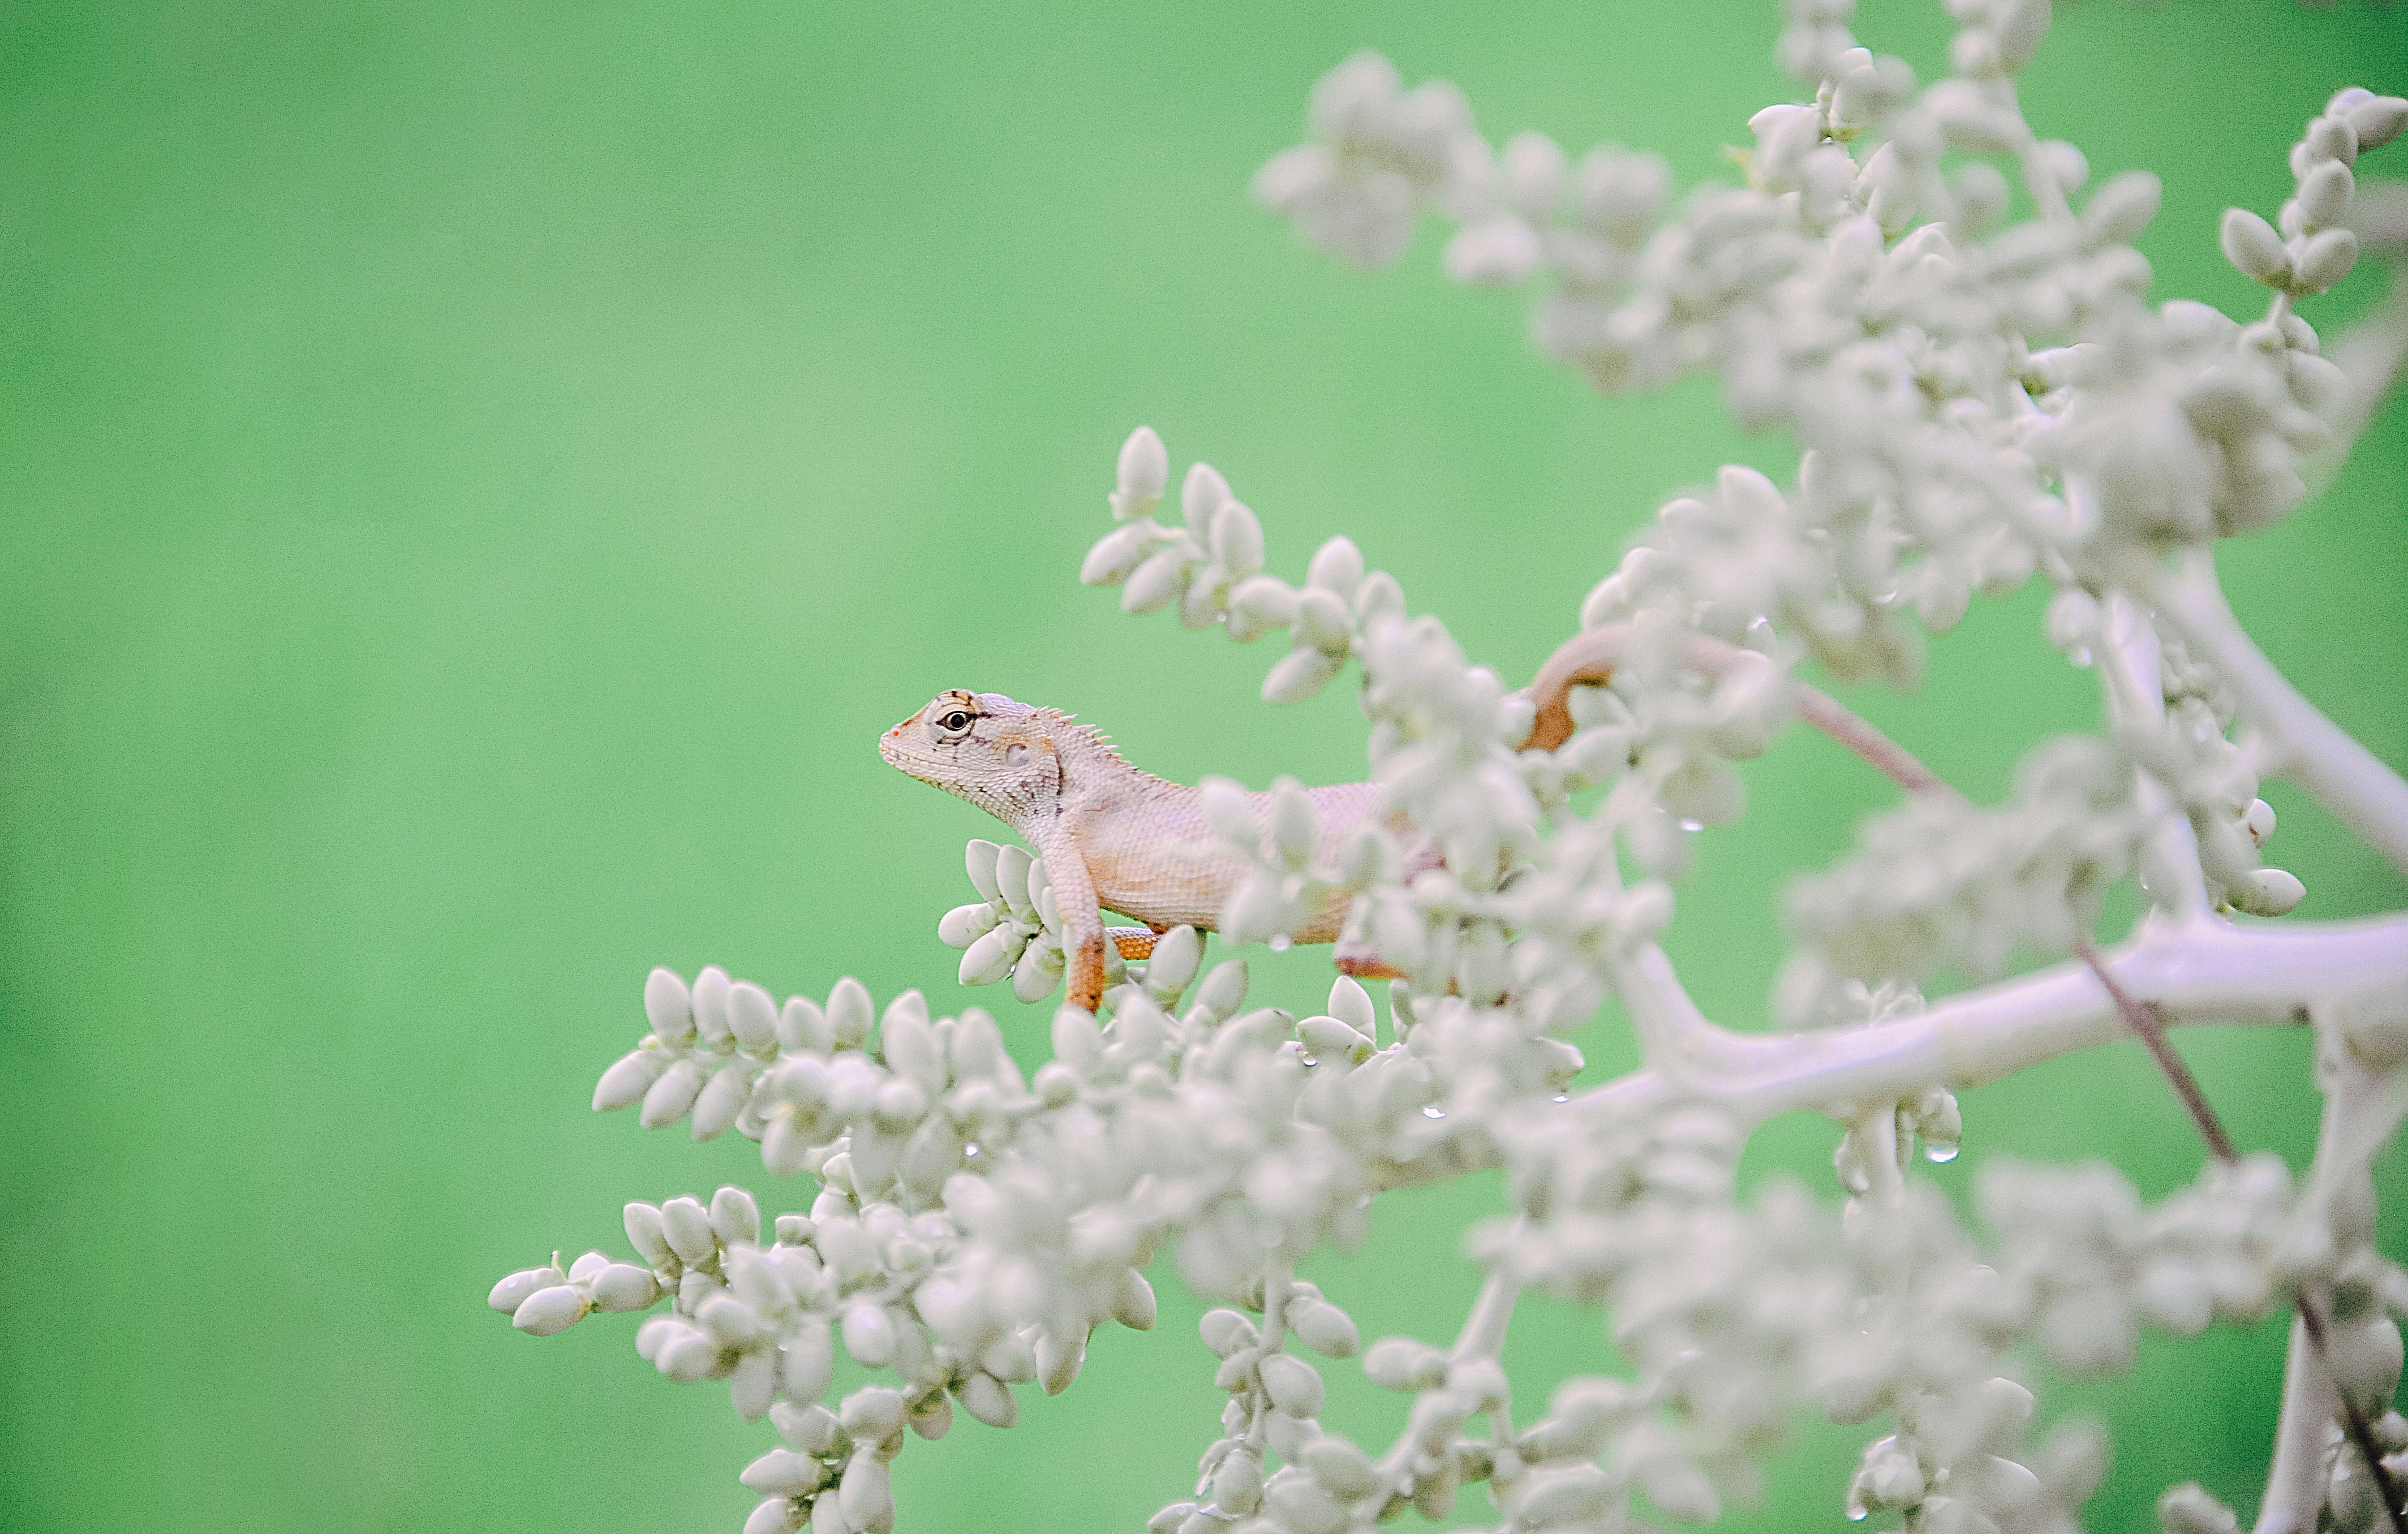 White Lizard On Plant